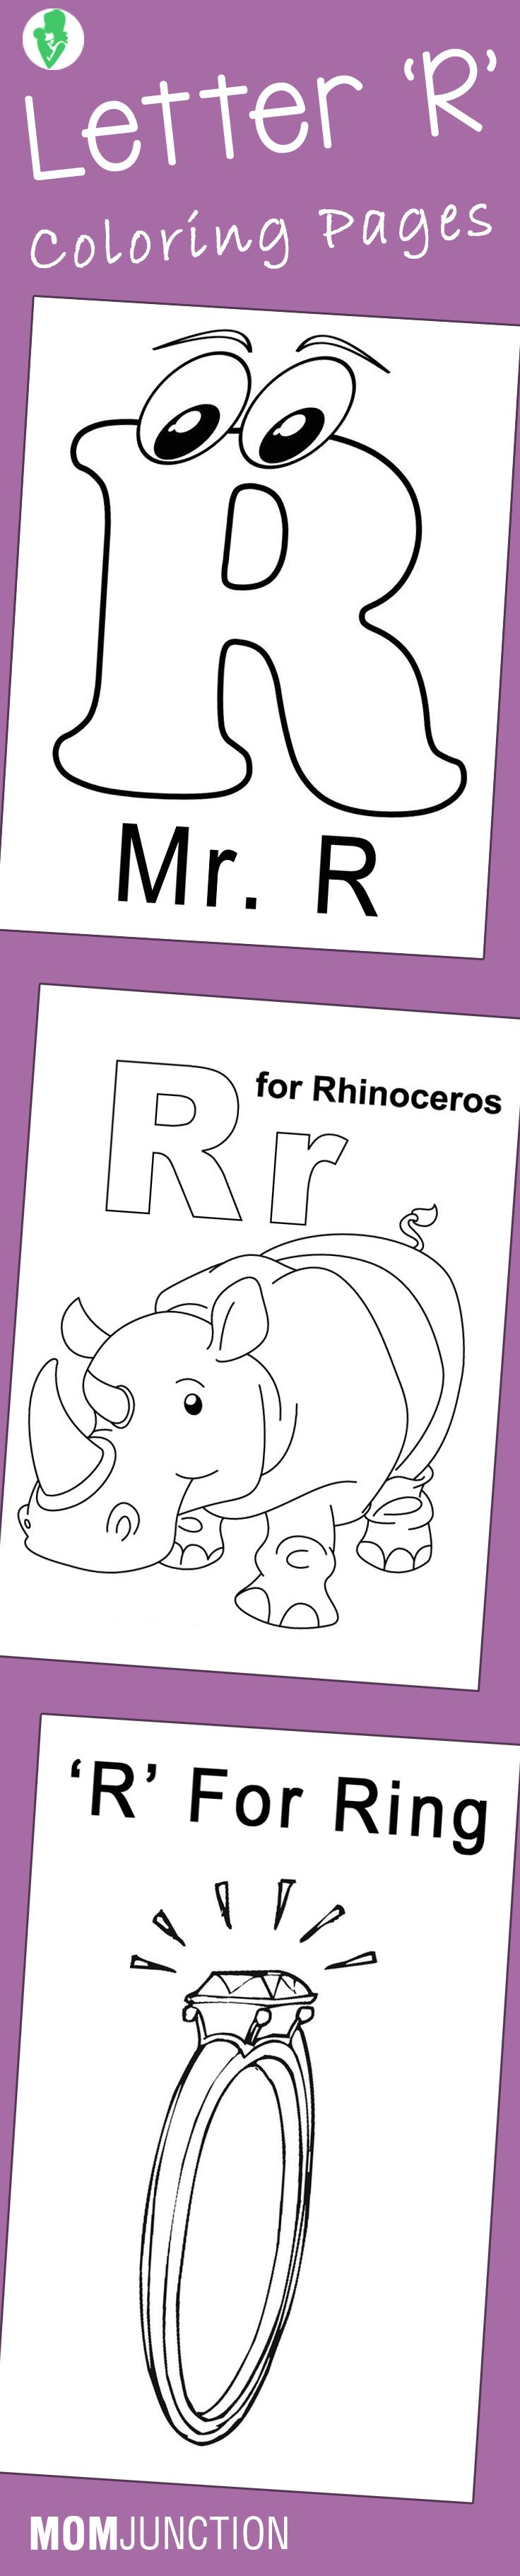 alphabet coloring pages download - photo#35